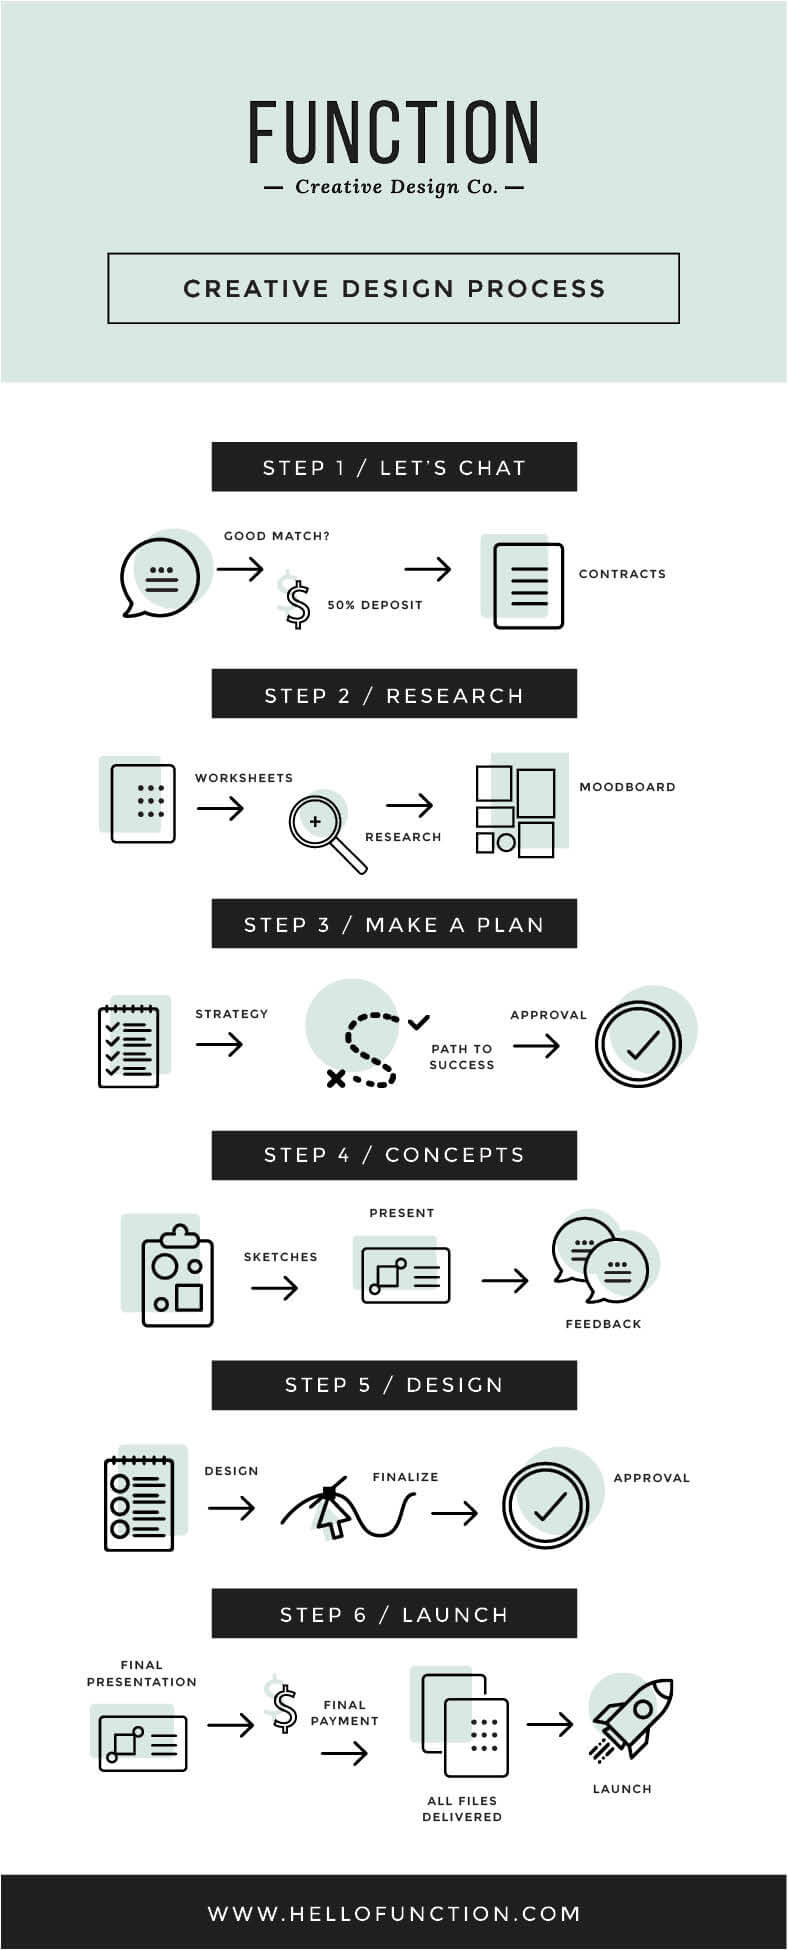 graphic design entrepreneur design process by Function Creative Co.